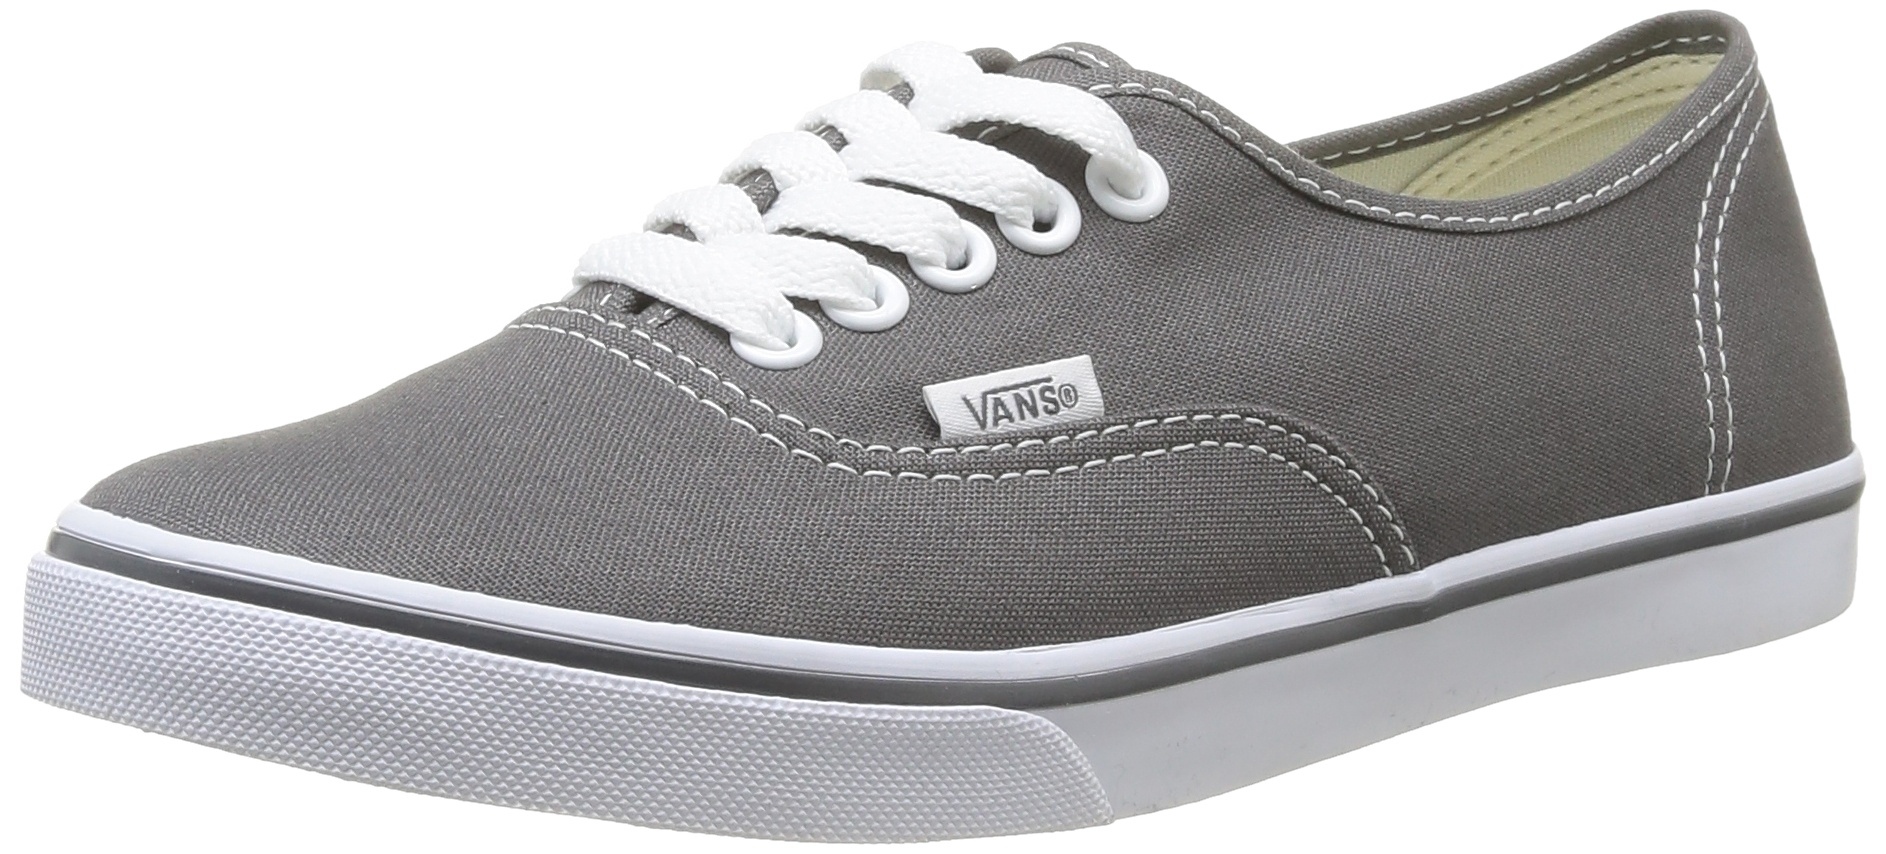 Vans Unisex's VANS AUTHENTIC LO PRO CASUAL SHOES 7 Men US / 8.5 Women US (PEWTER/TRUE WHITE) by Vans